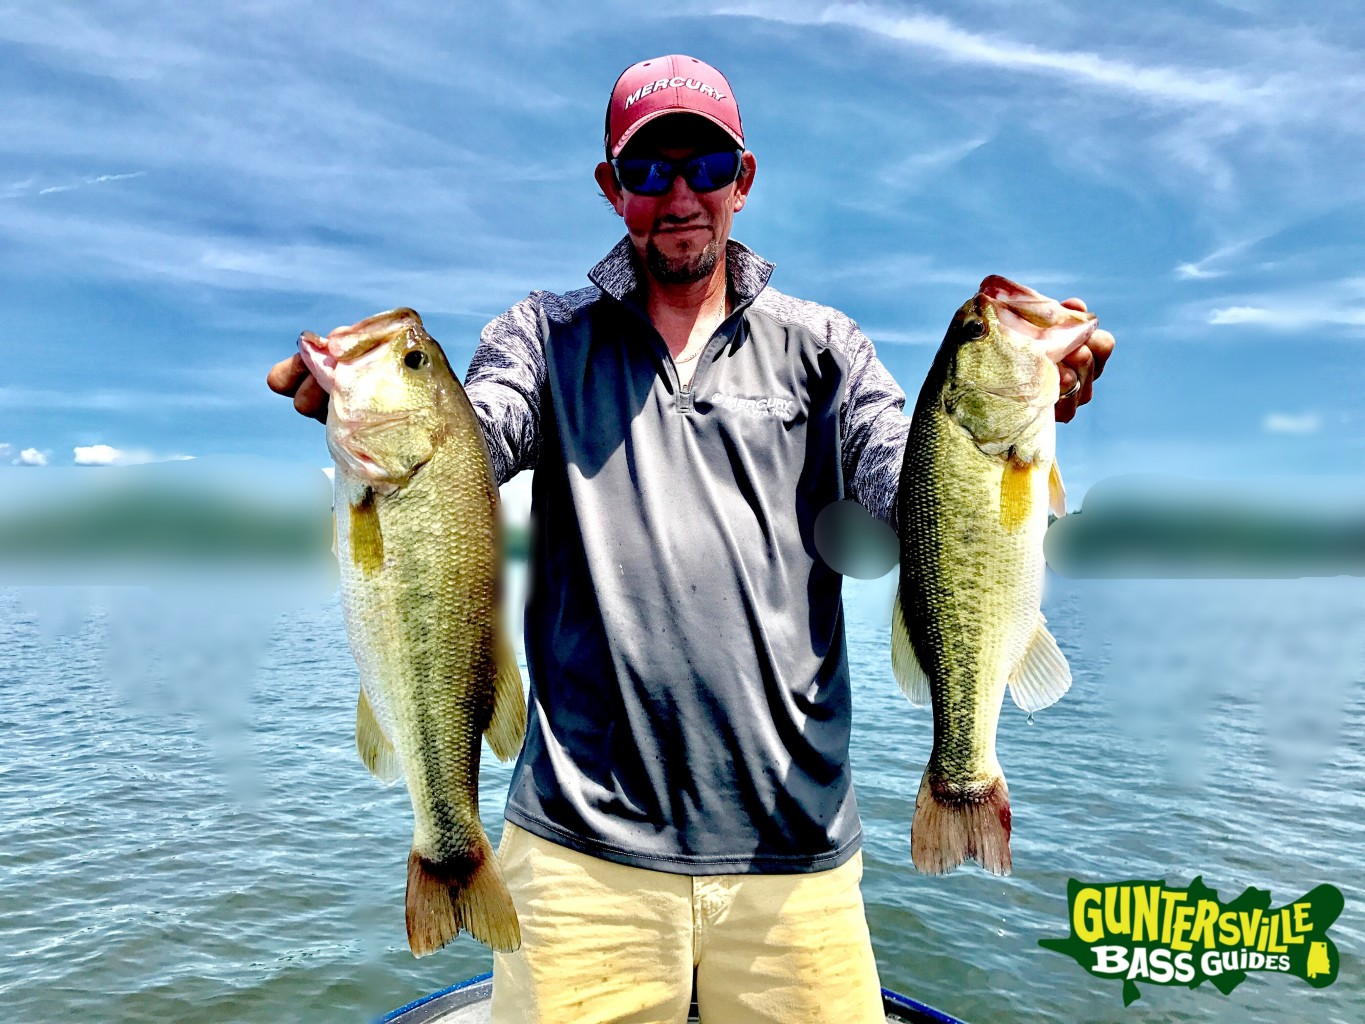 Lake guntersville june 28th for Bass fishing trips